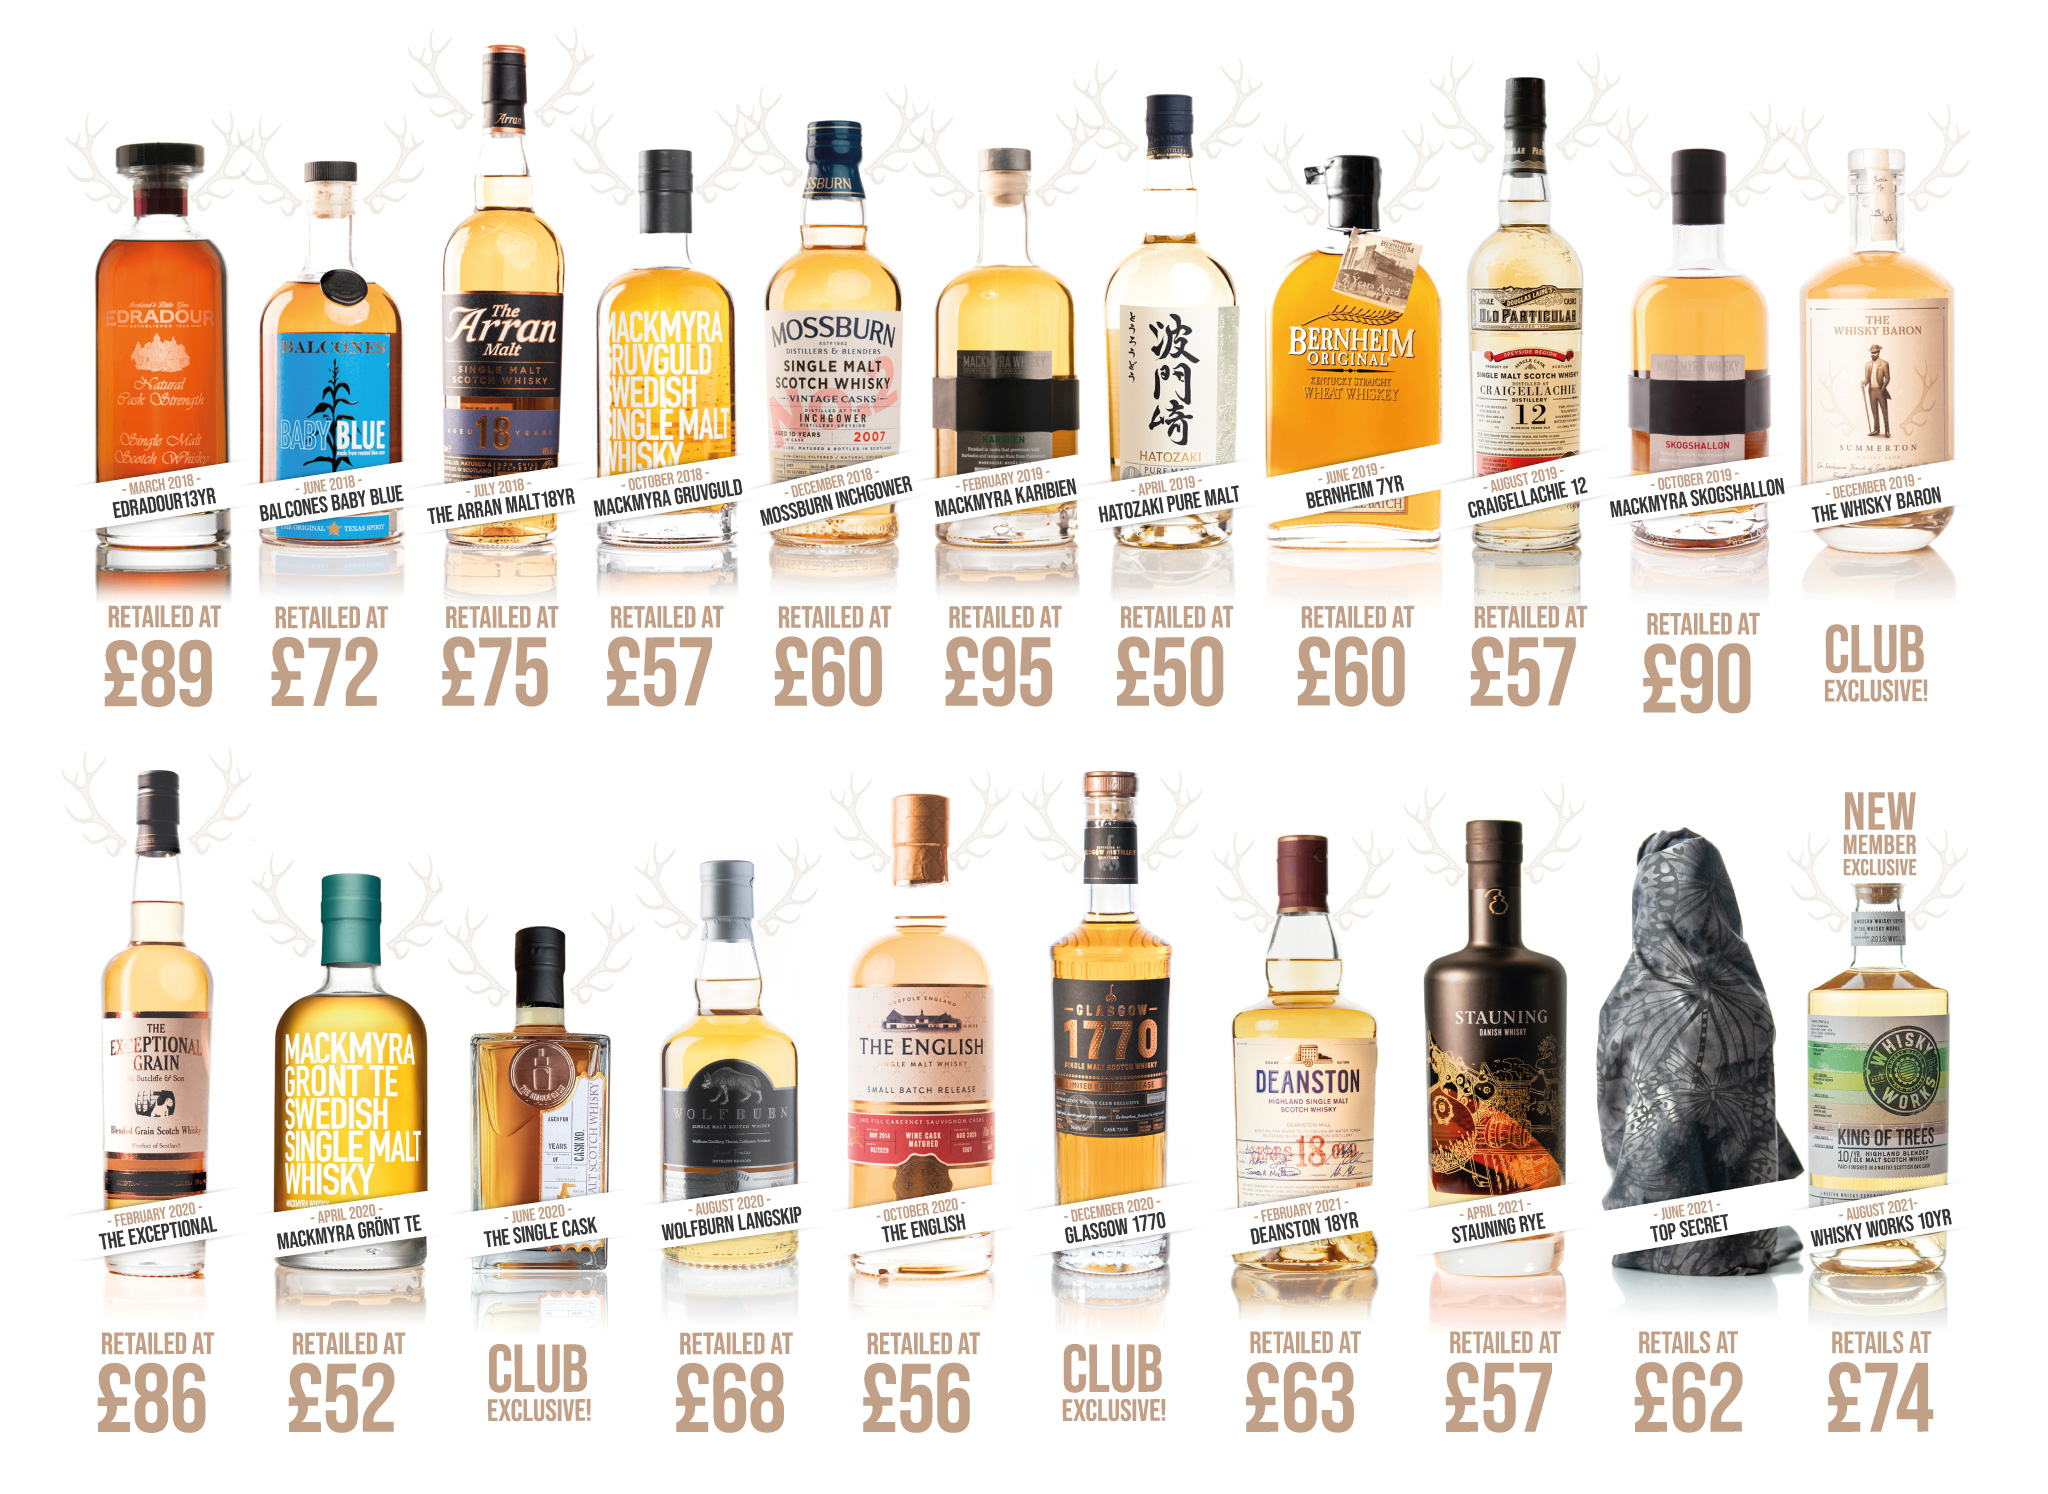 An Exclusive Whisky for New Members, Summerton Whisky Club